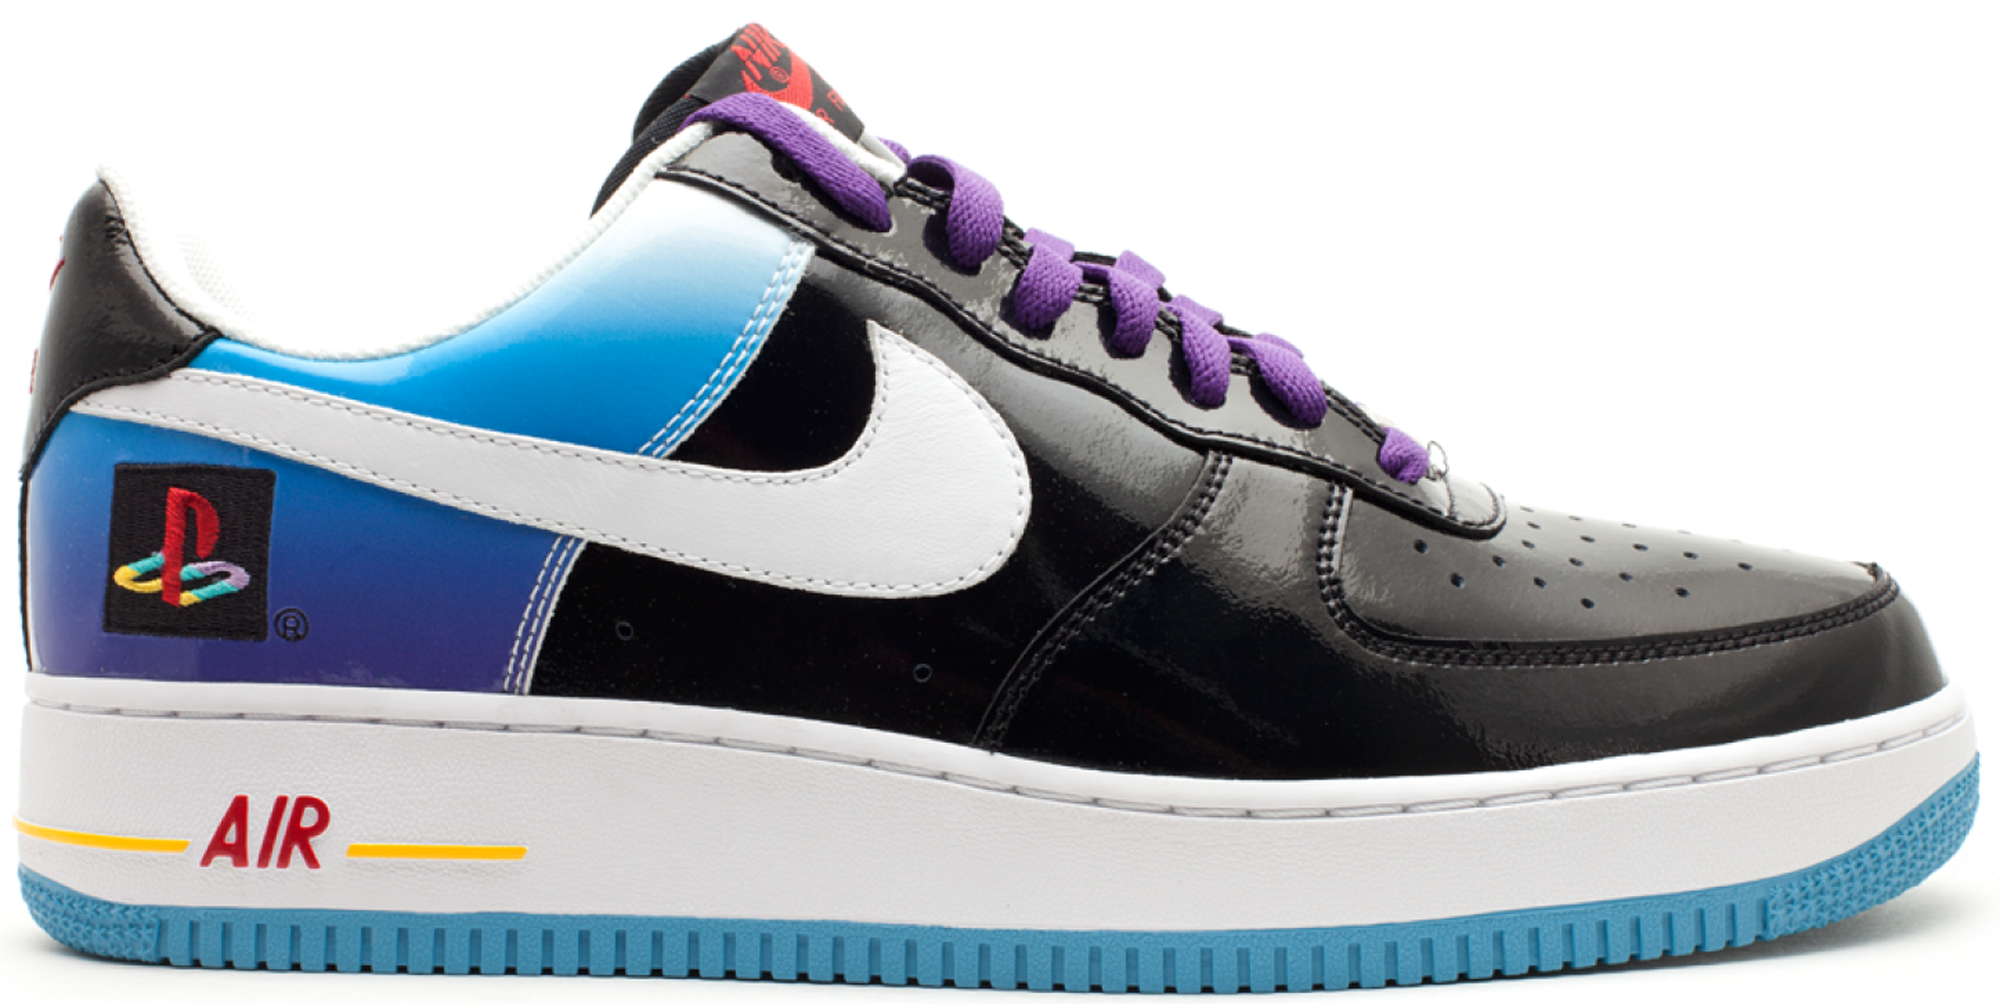 Air Force 1 Low Playstation (2009)